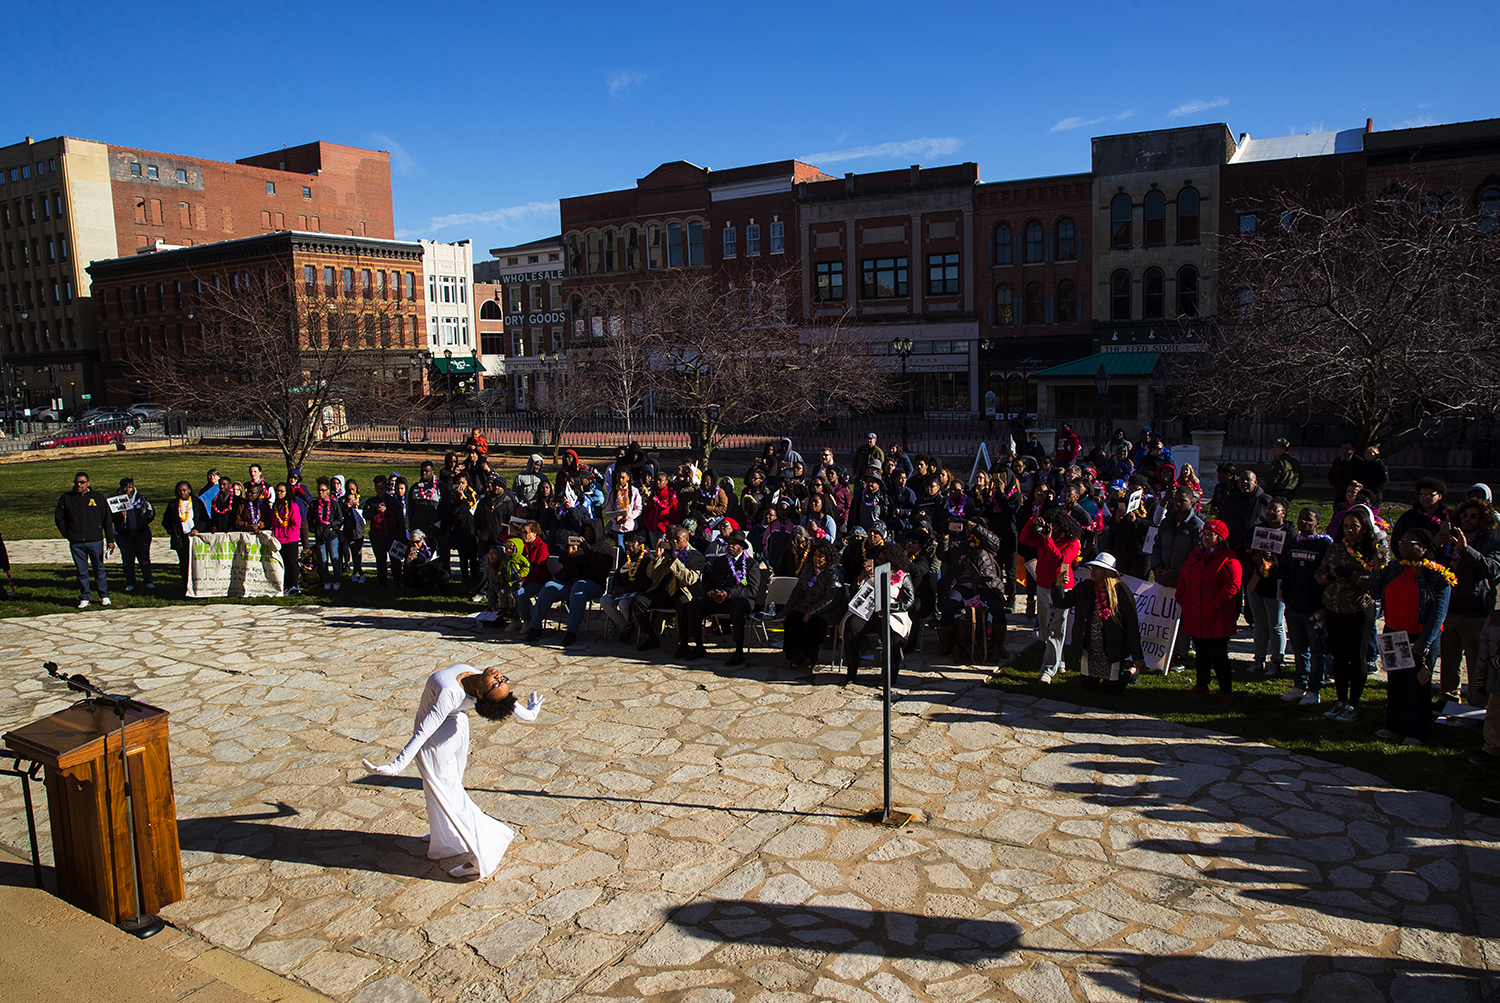 Judaea Hopson performs with the 4H Dancers from the Sangamon County 4-H club during a ceremony following the reenactment of the historic 1965 Selma to Montgomery March on Sunday, March 25, 2018. The march, from Chamberlain Park to the Old State Capitol, was organized by the 4-H club. [Ted Schurter/The State Journal-Register]